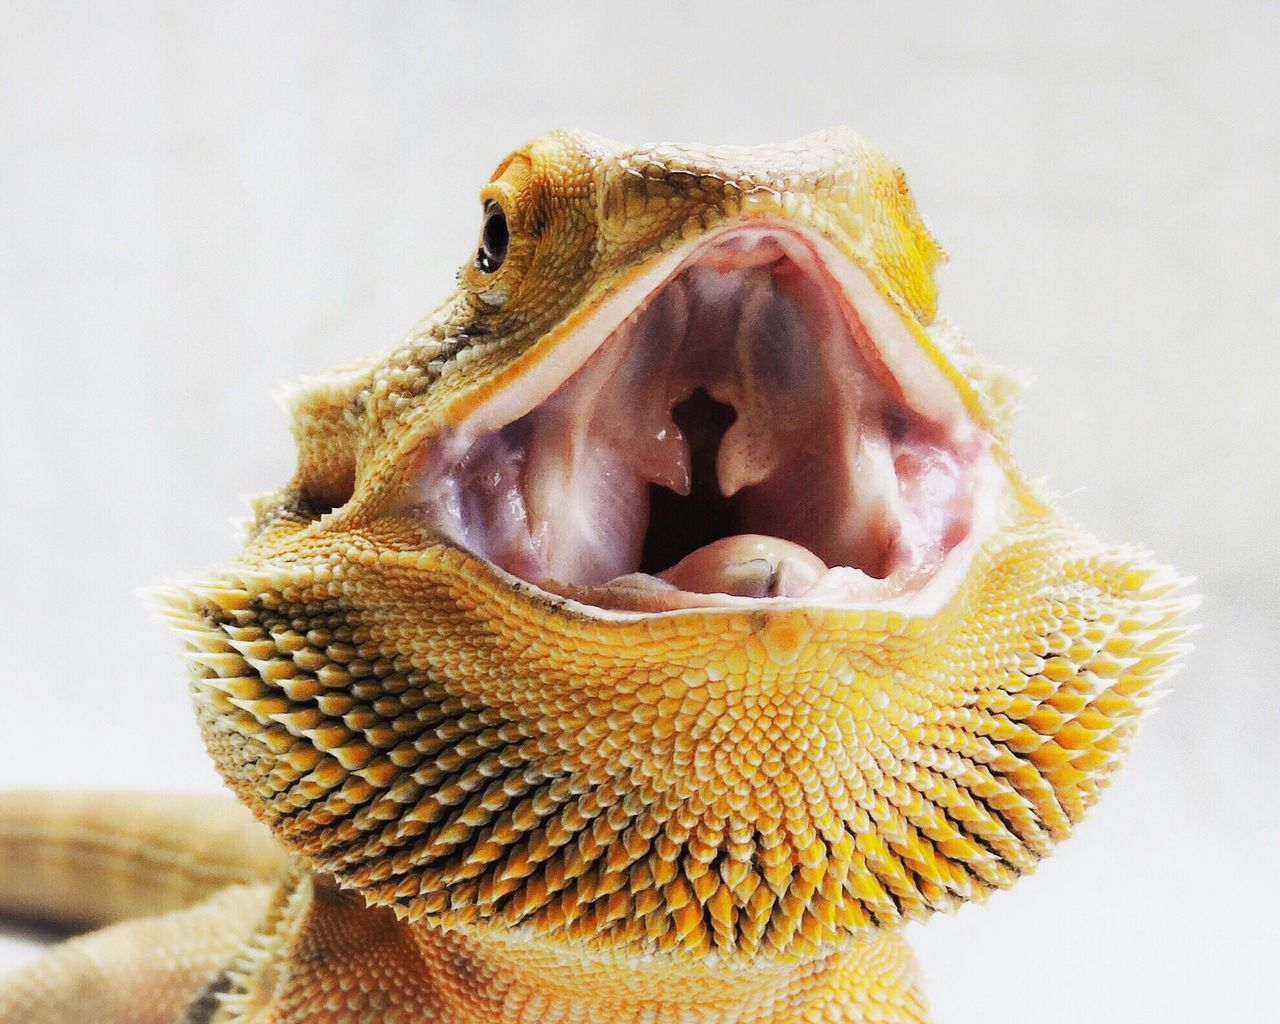 Bearded Dragon Close-up One Animal Animal Themes No People Mouth Open Nature Studio Shot White Background Contrast Detail Spikes Spiked Headshot Animal Head  HEAD Mouth Open Australian Native Animal Lizard Freshness Vibrant Color Vibrant